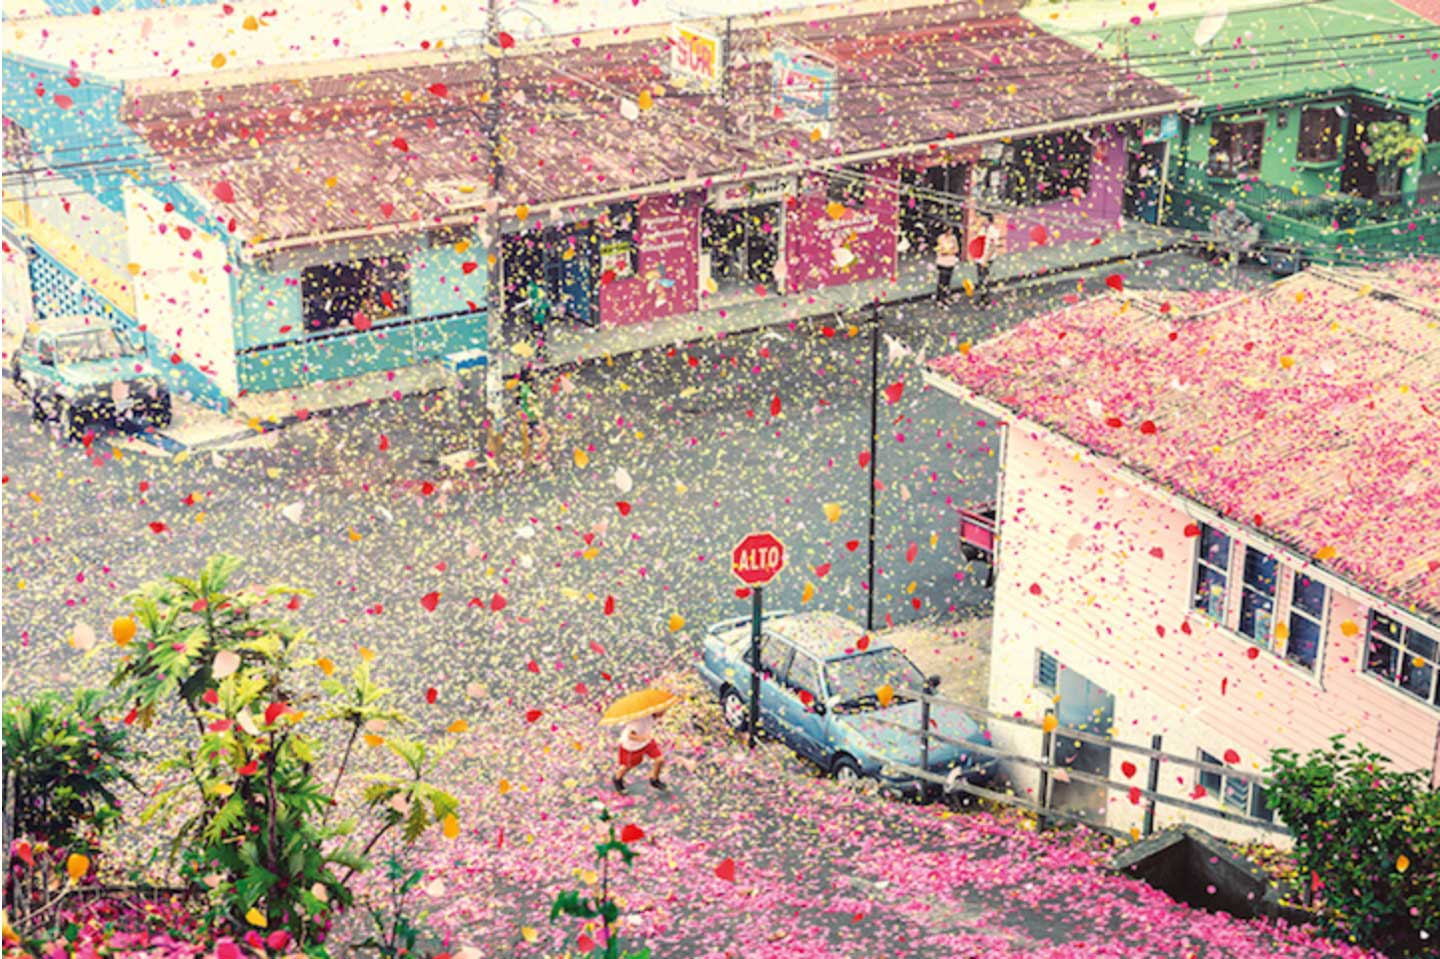 Video // 8 million Flower Petals Cover a Village in Costa Rica.